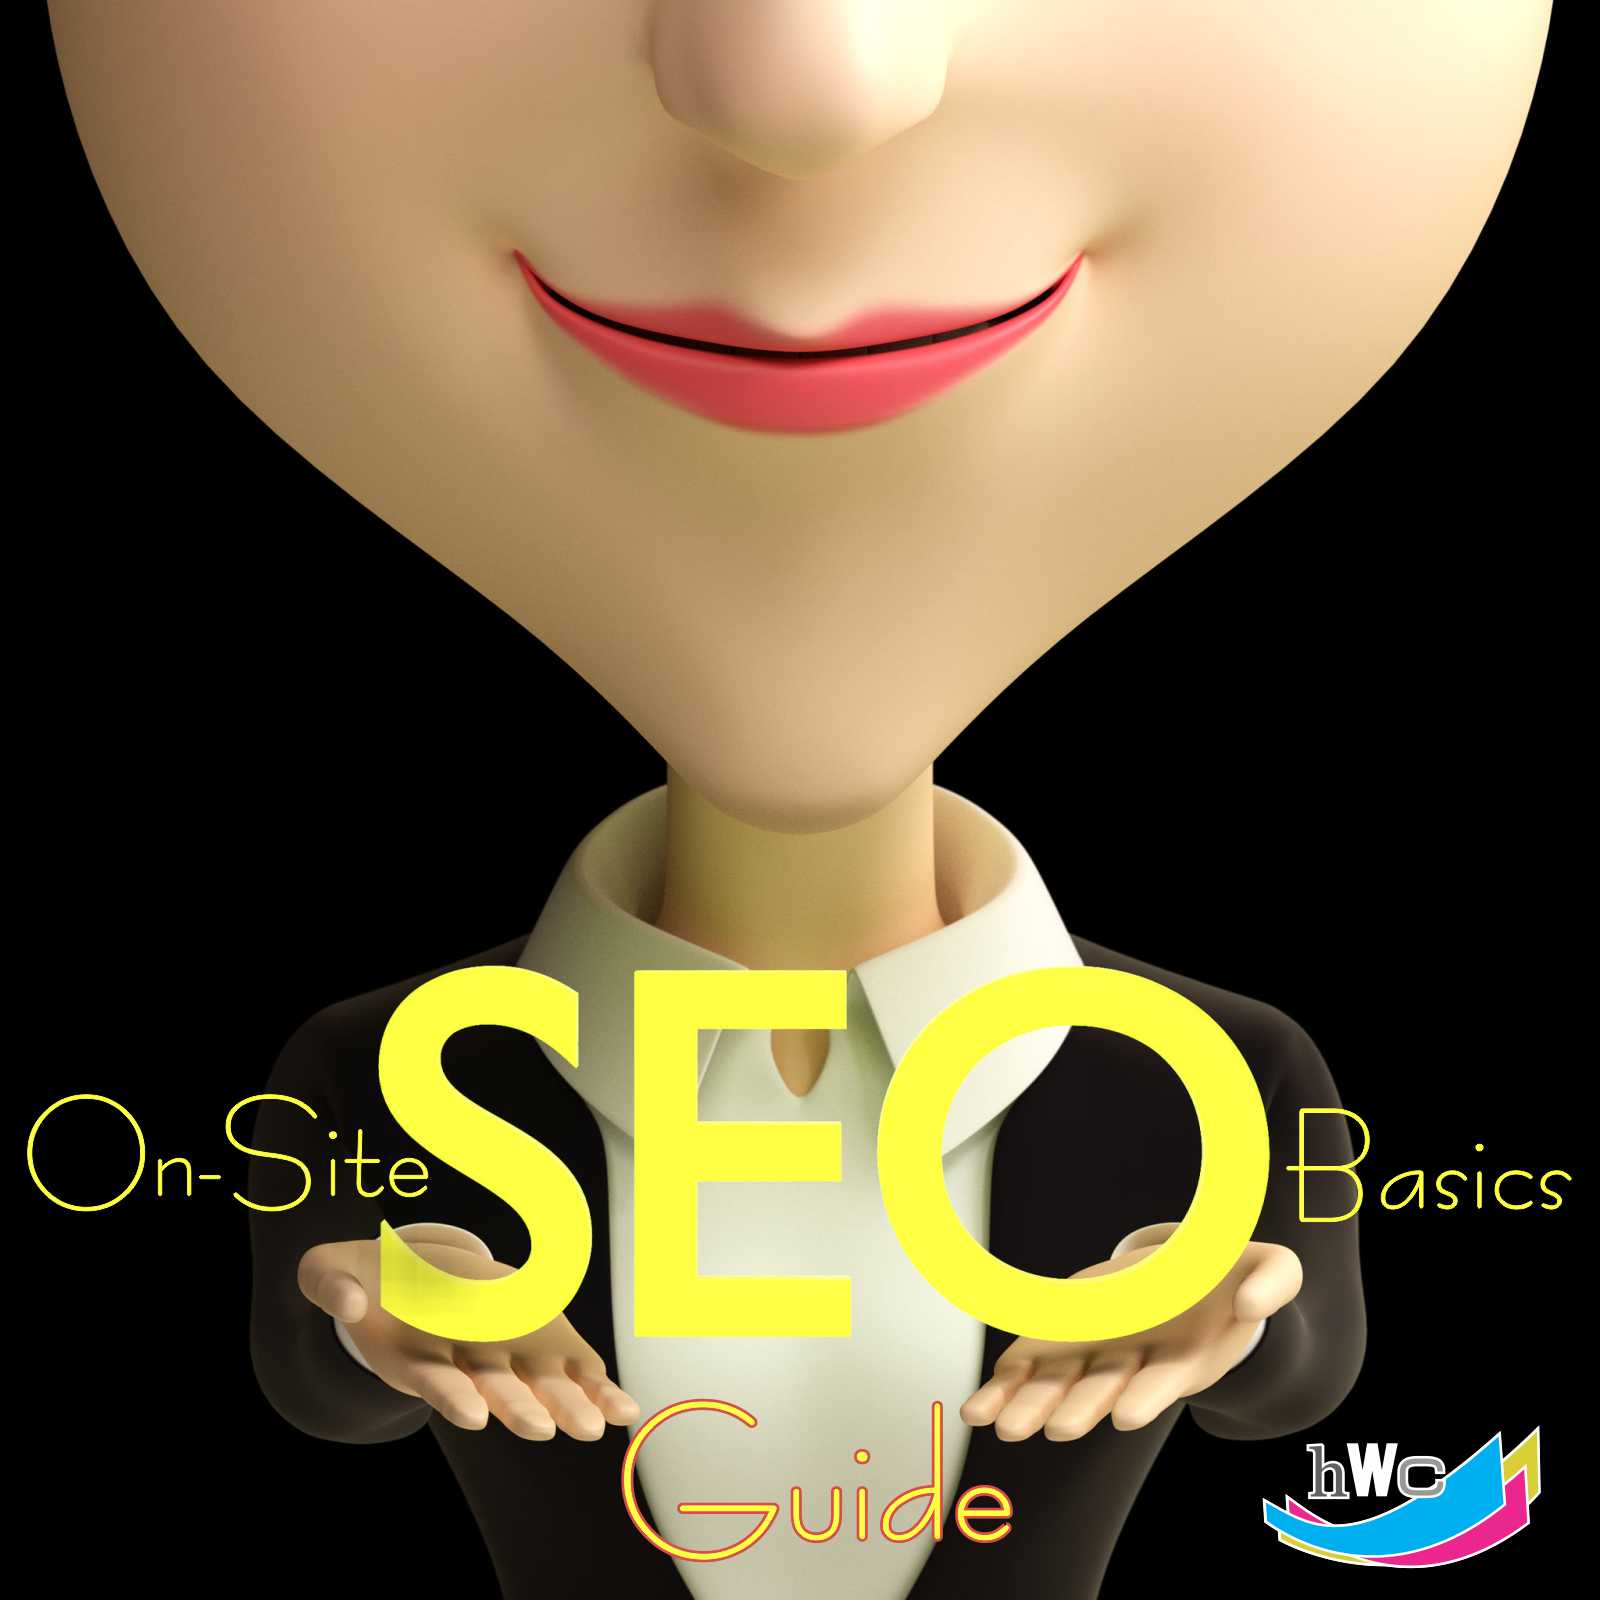 Google Seo Basics Guide